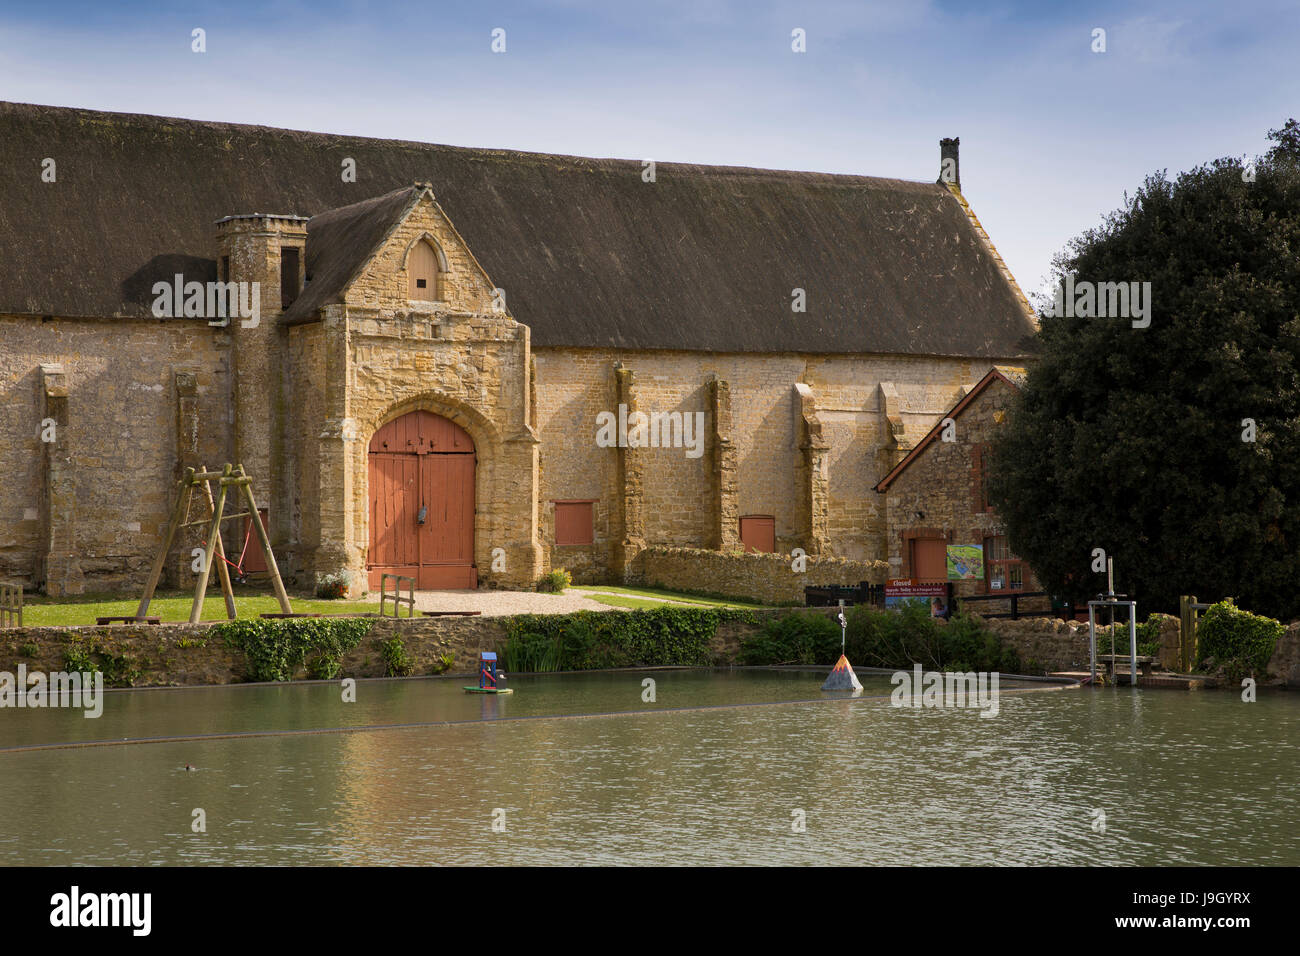 UK England, Dorset, Abbotsbury, Church Street, Medieval former Benedictine Abbey Tithe Barn across fish pond - Stock Image